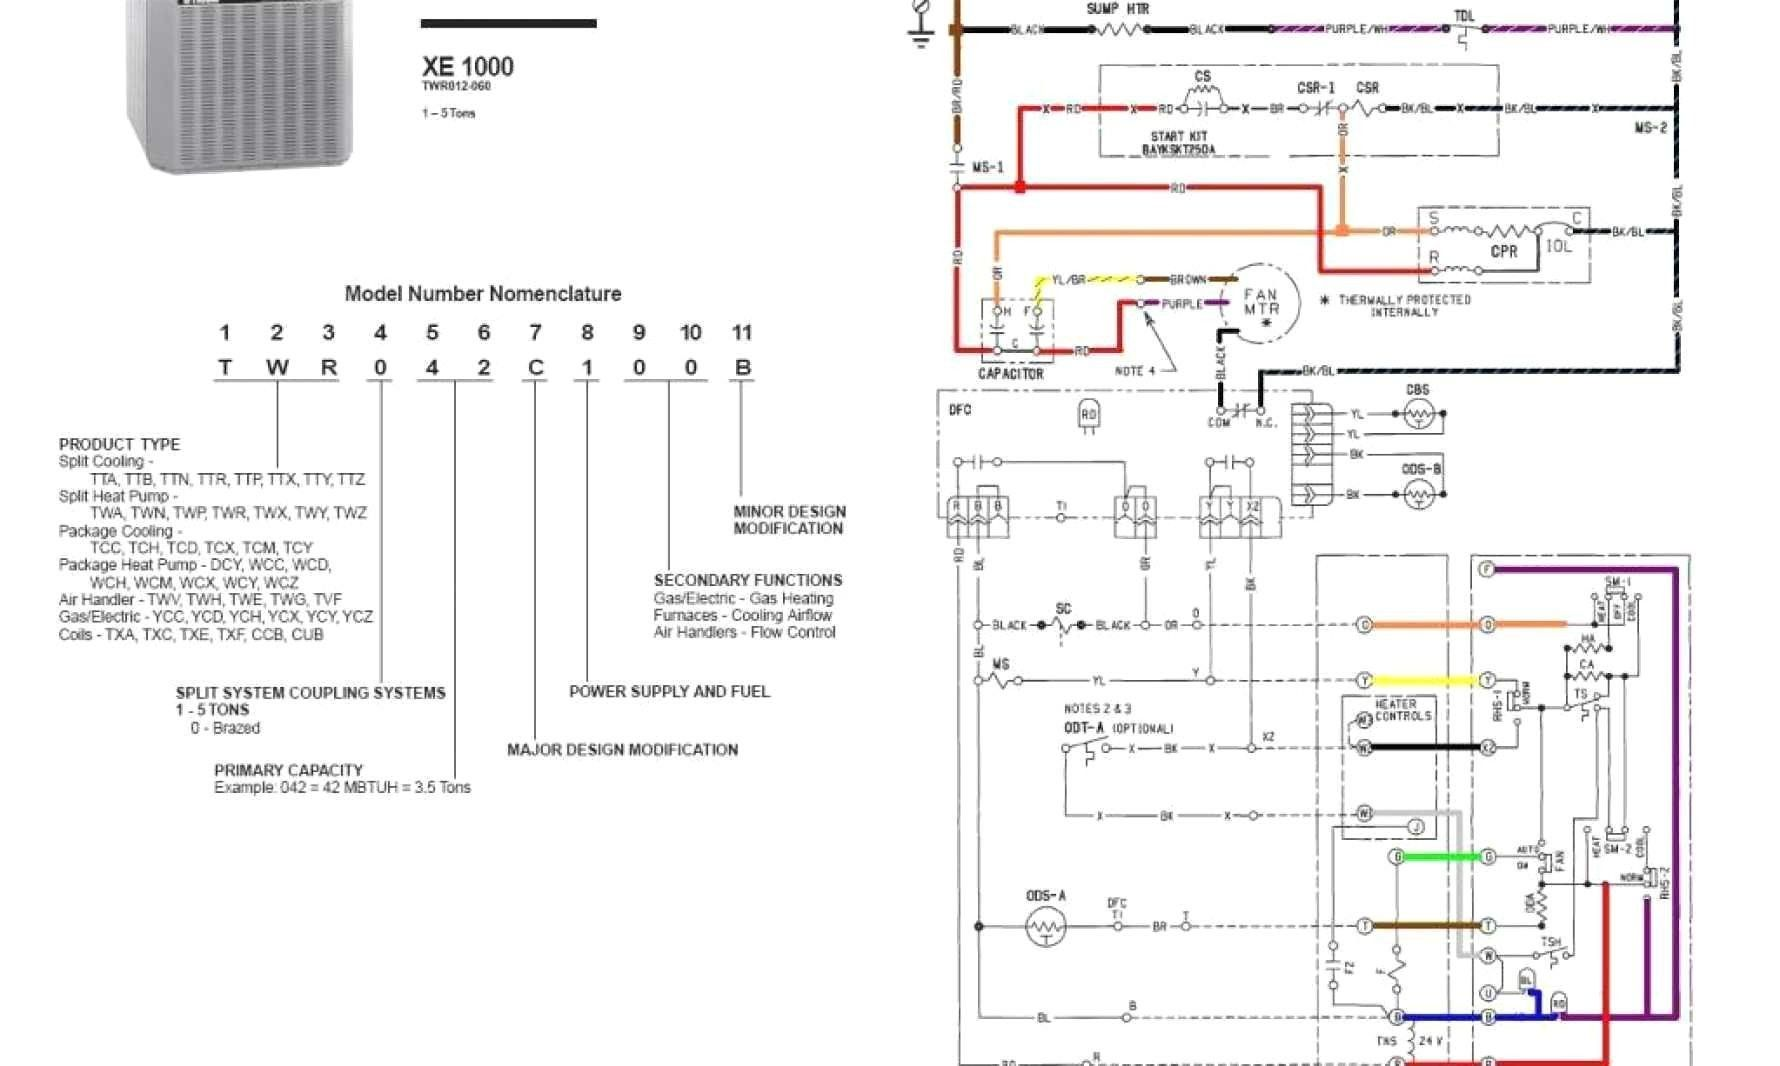 Trane Thermostat Wiring Diagram Luxury Wiring Diagram For